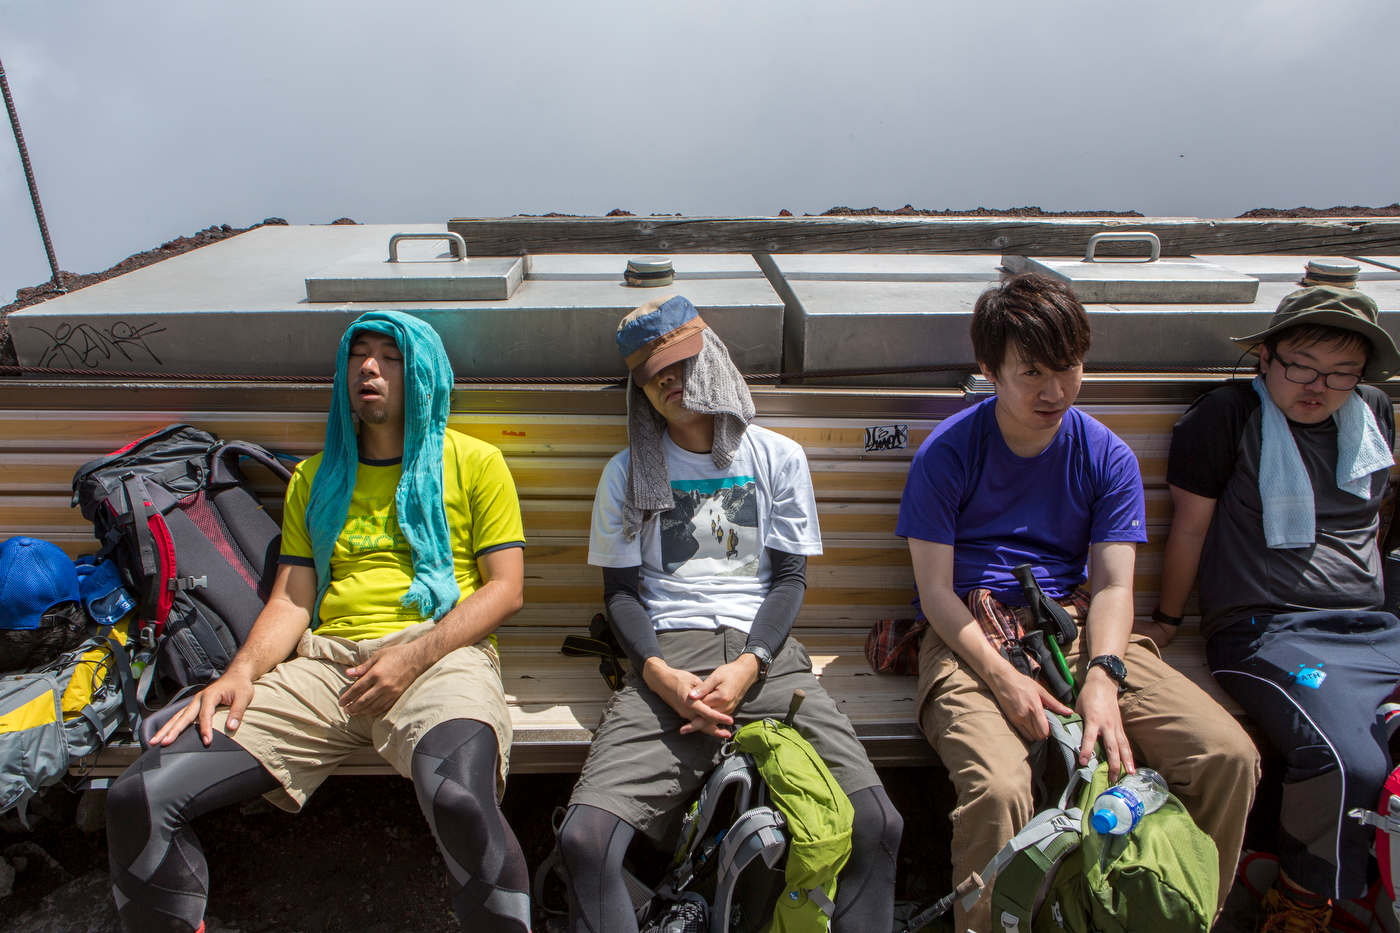 Exhausted hikers rest at a station on the Yoshida trail, Mount Fuji's most popular route.